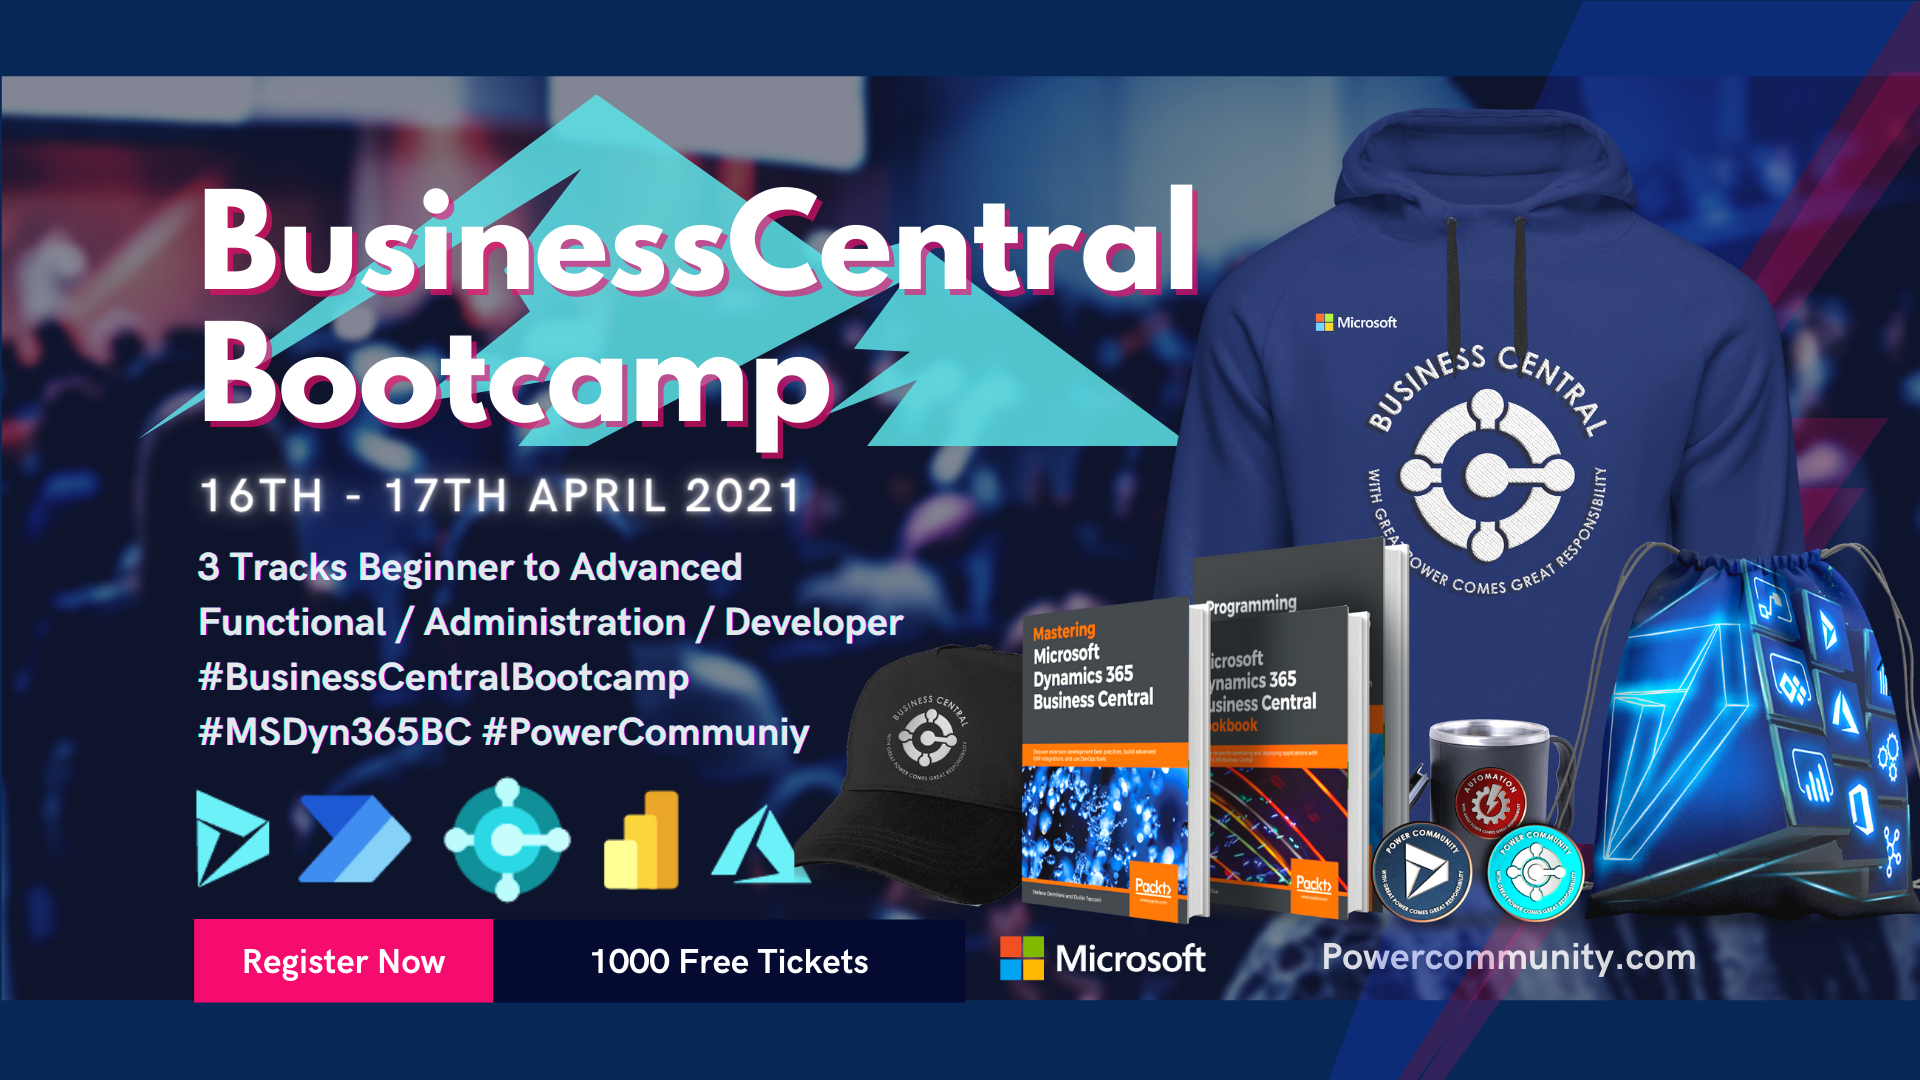 Business Central Bootcamp 2021